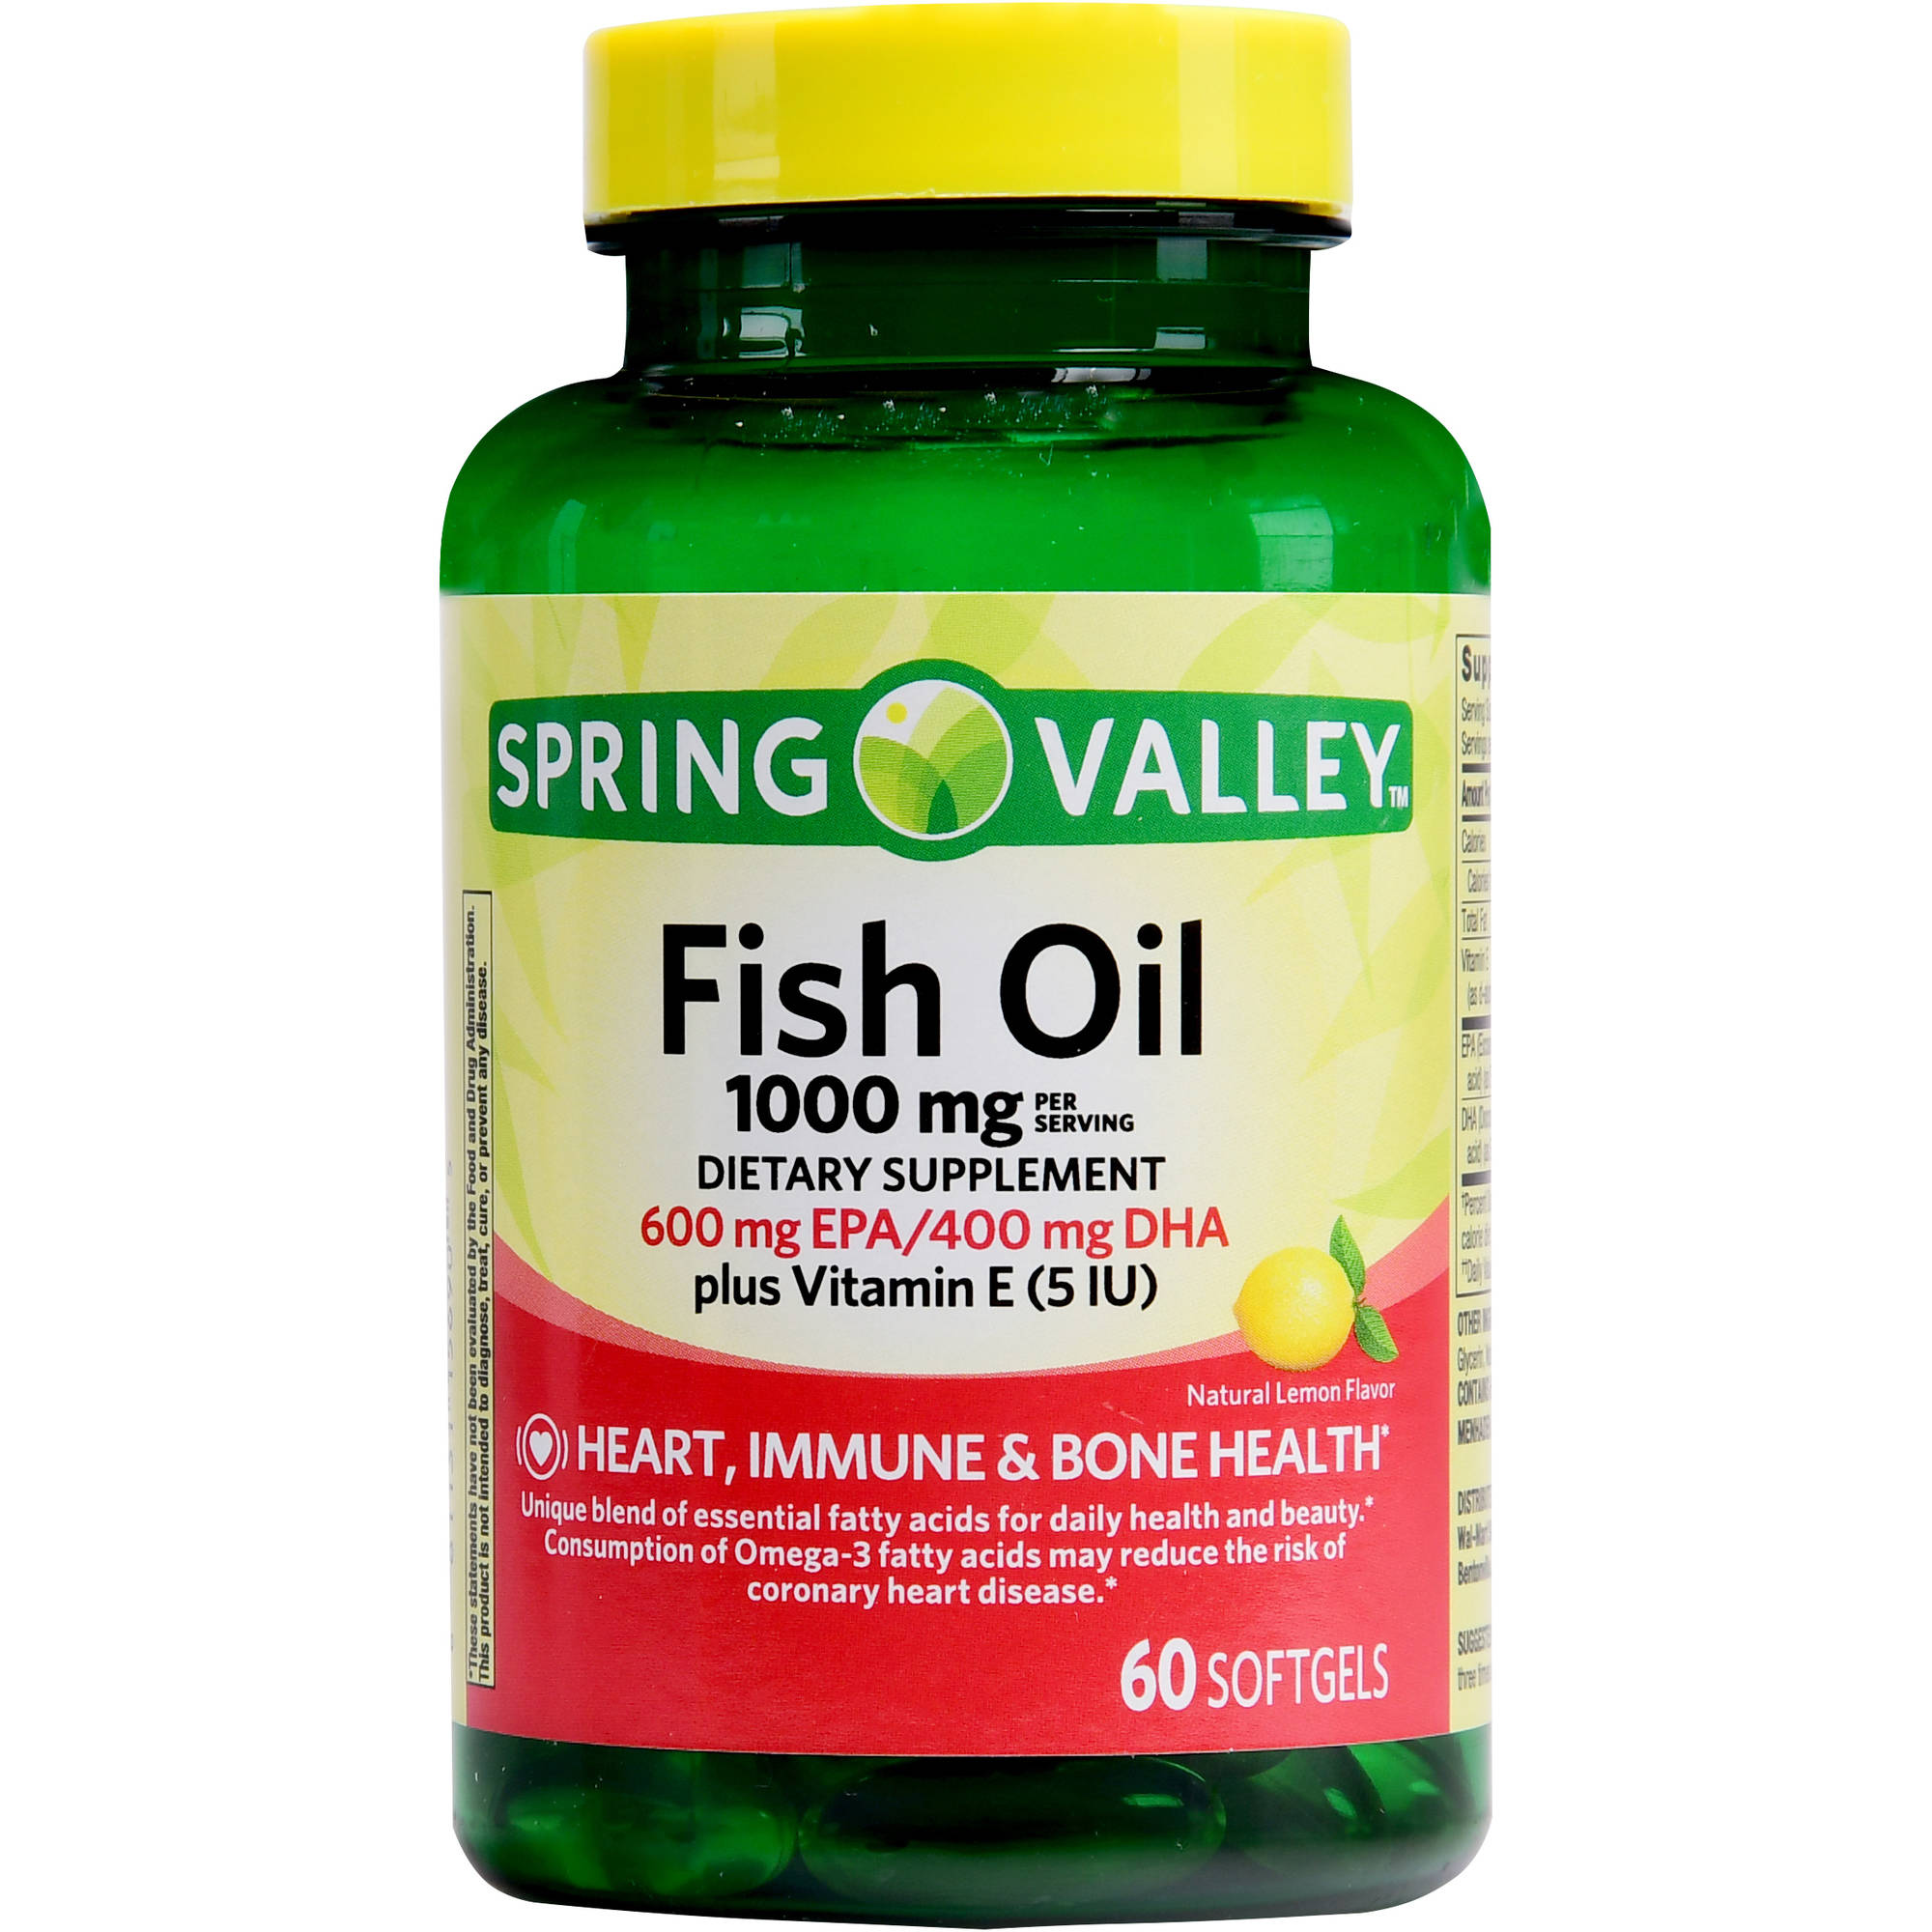 Spring valley fish oil 1000 mg 600 mg epa 400 mg dha plus for Fish oil 1000 mg